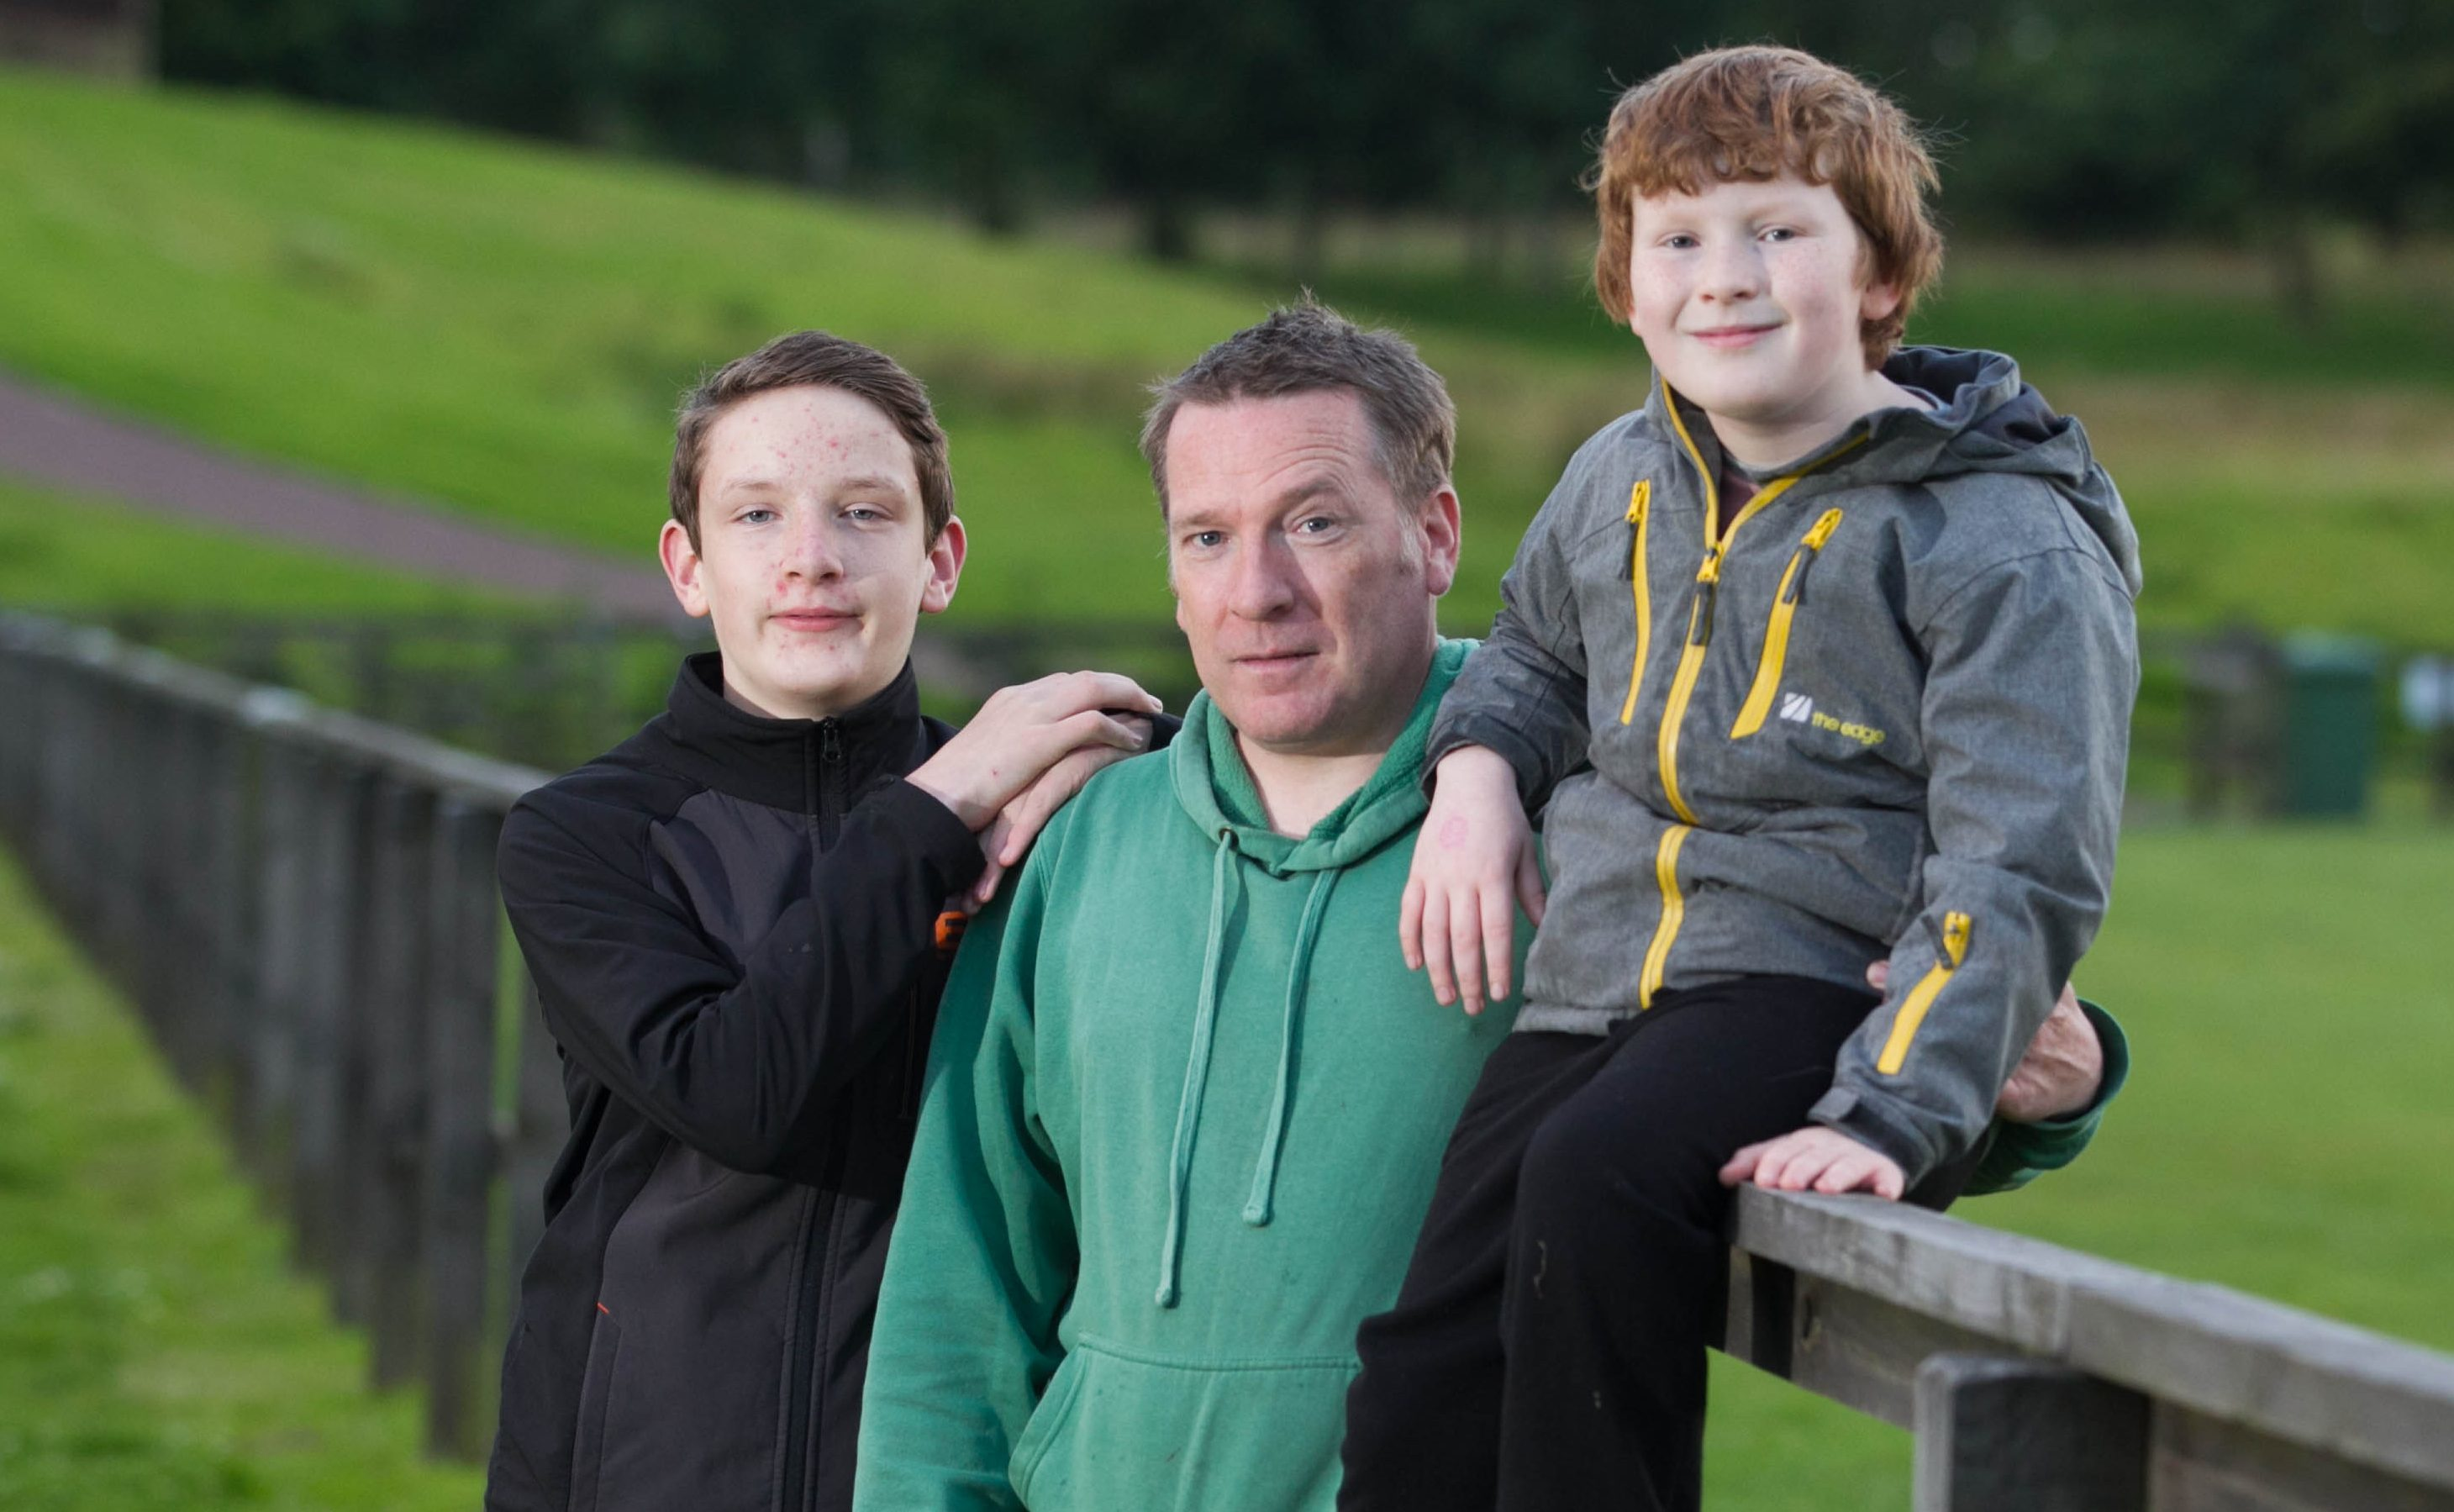 Scottish Ambulance Service paramedic Danny Kerr was shocked when he came across badly injured walker Angus MacDonald with sons Euan, 14, and Harris, 10 (Chris Austin/ DC Thomson)